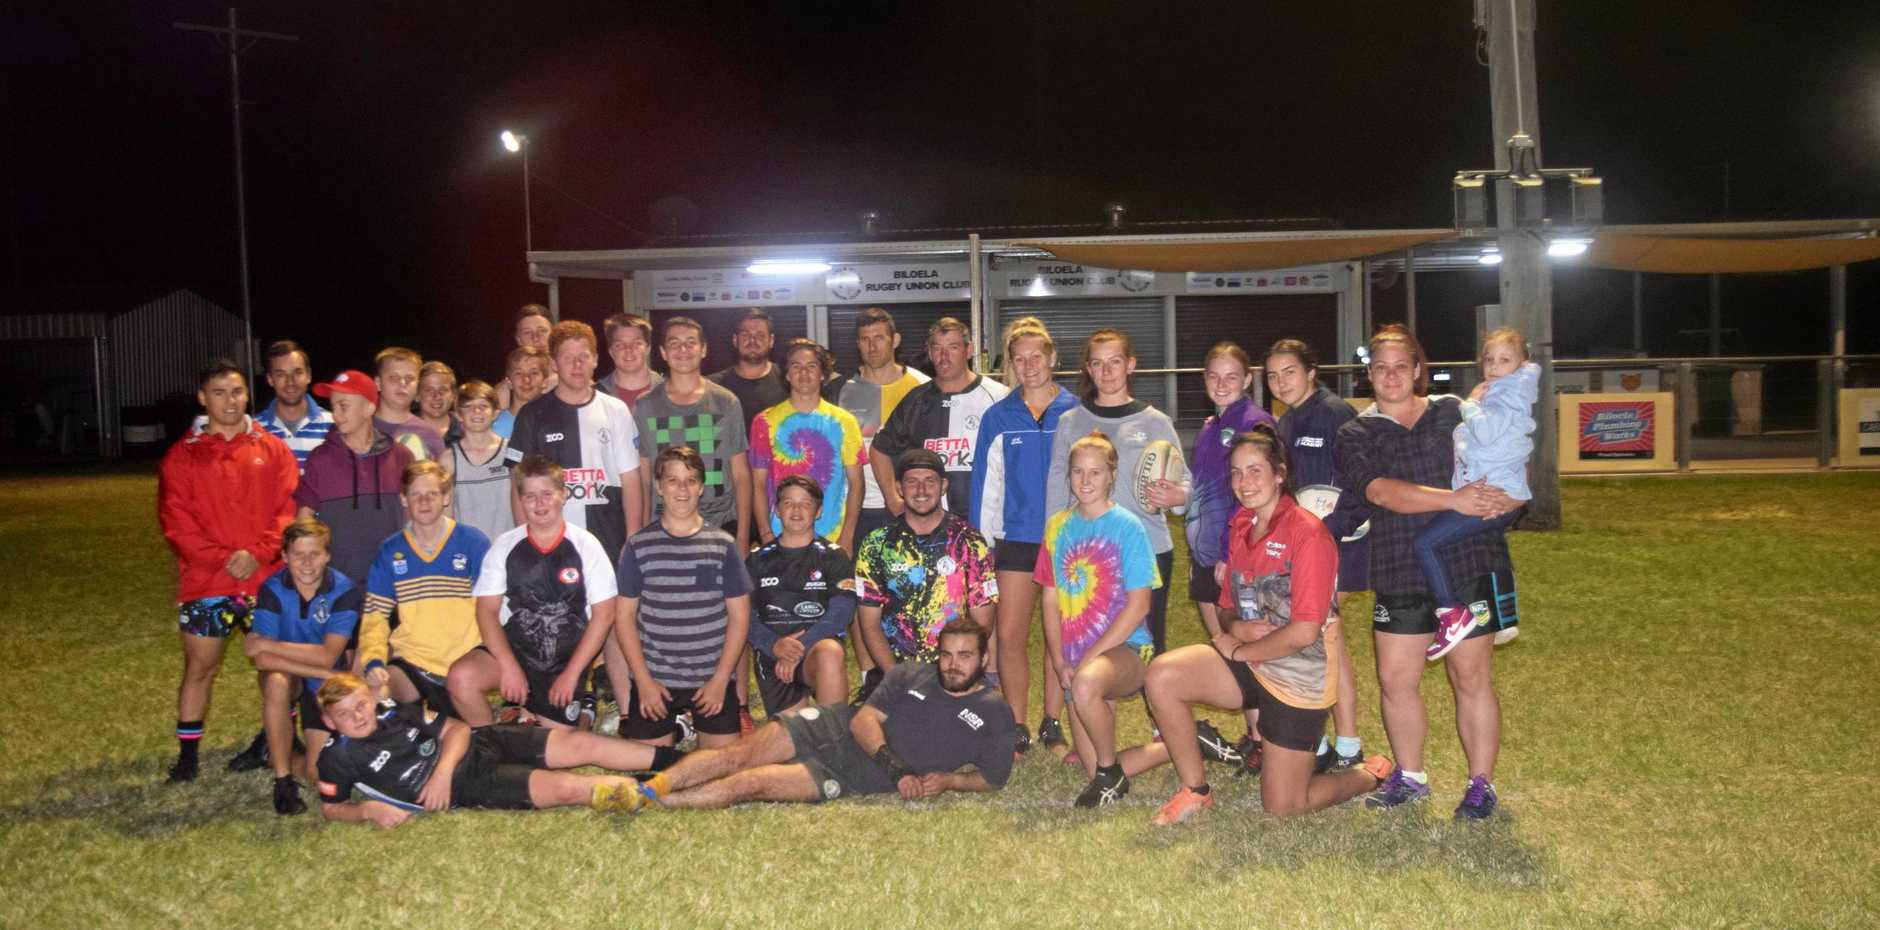 PRESENT & FUTURE: Members of the U14s, Ladies and Seniors squads represent the coming years of Biloela Rugby.